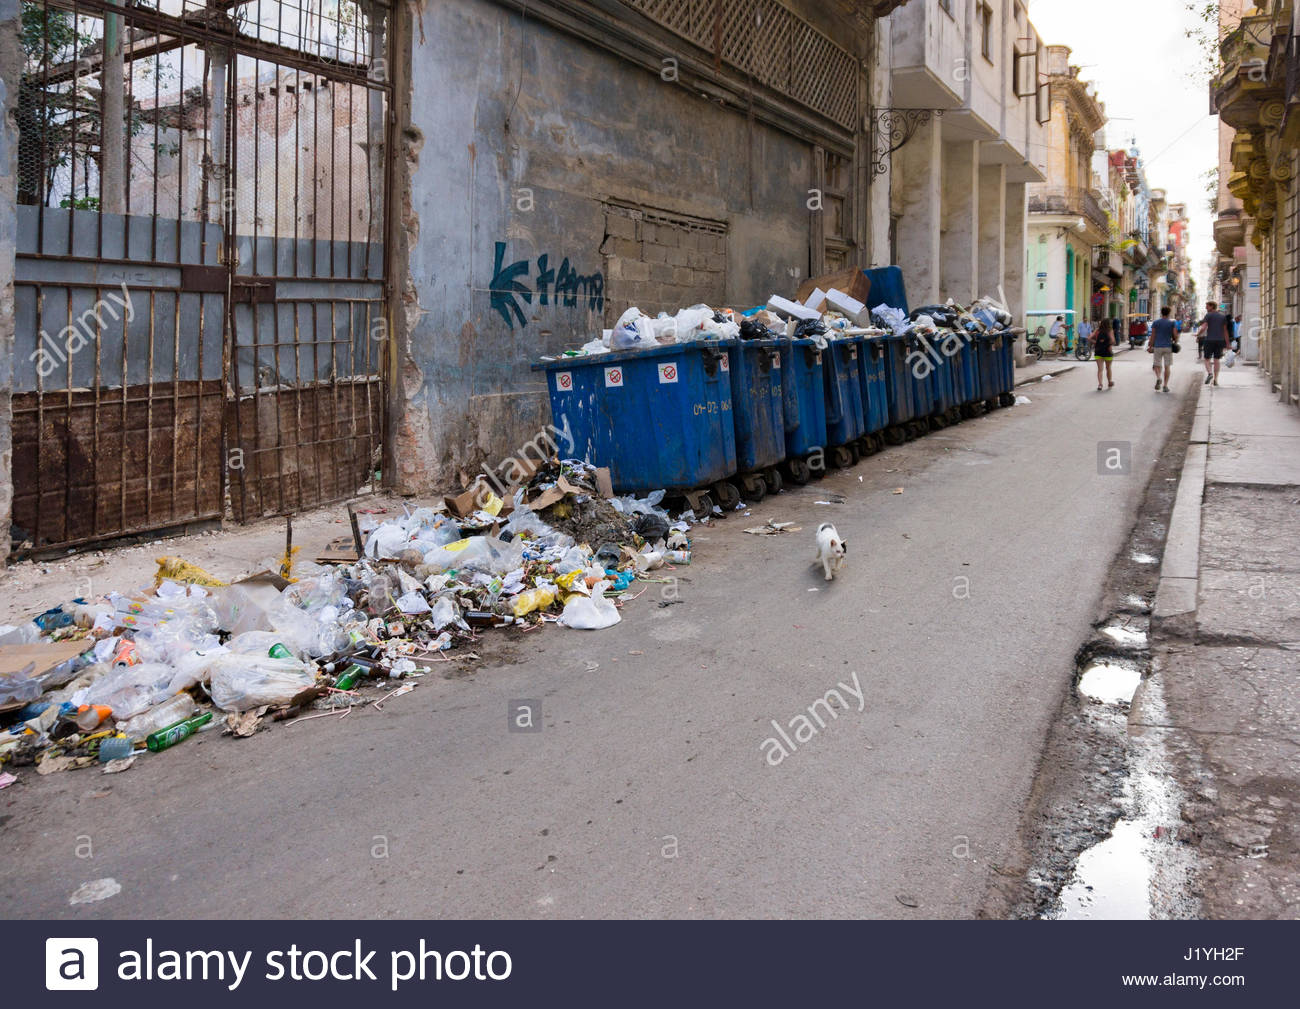 Cuba social issues: unhygienic 'Teniente Rey' street in Old Havana. Lack of garbage pick up. The street is one of Stock Photo